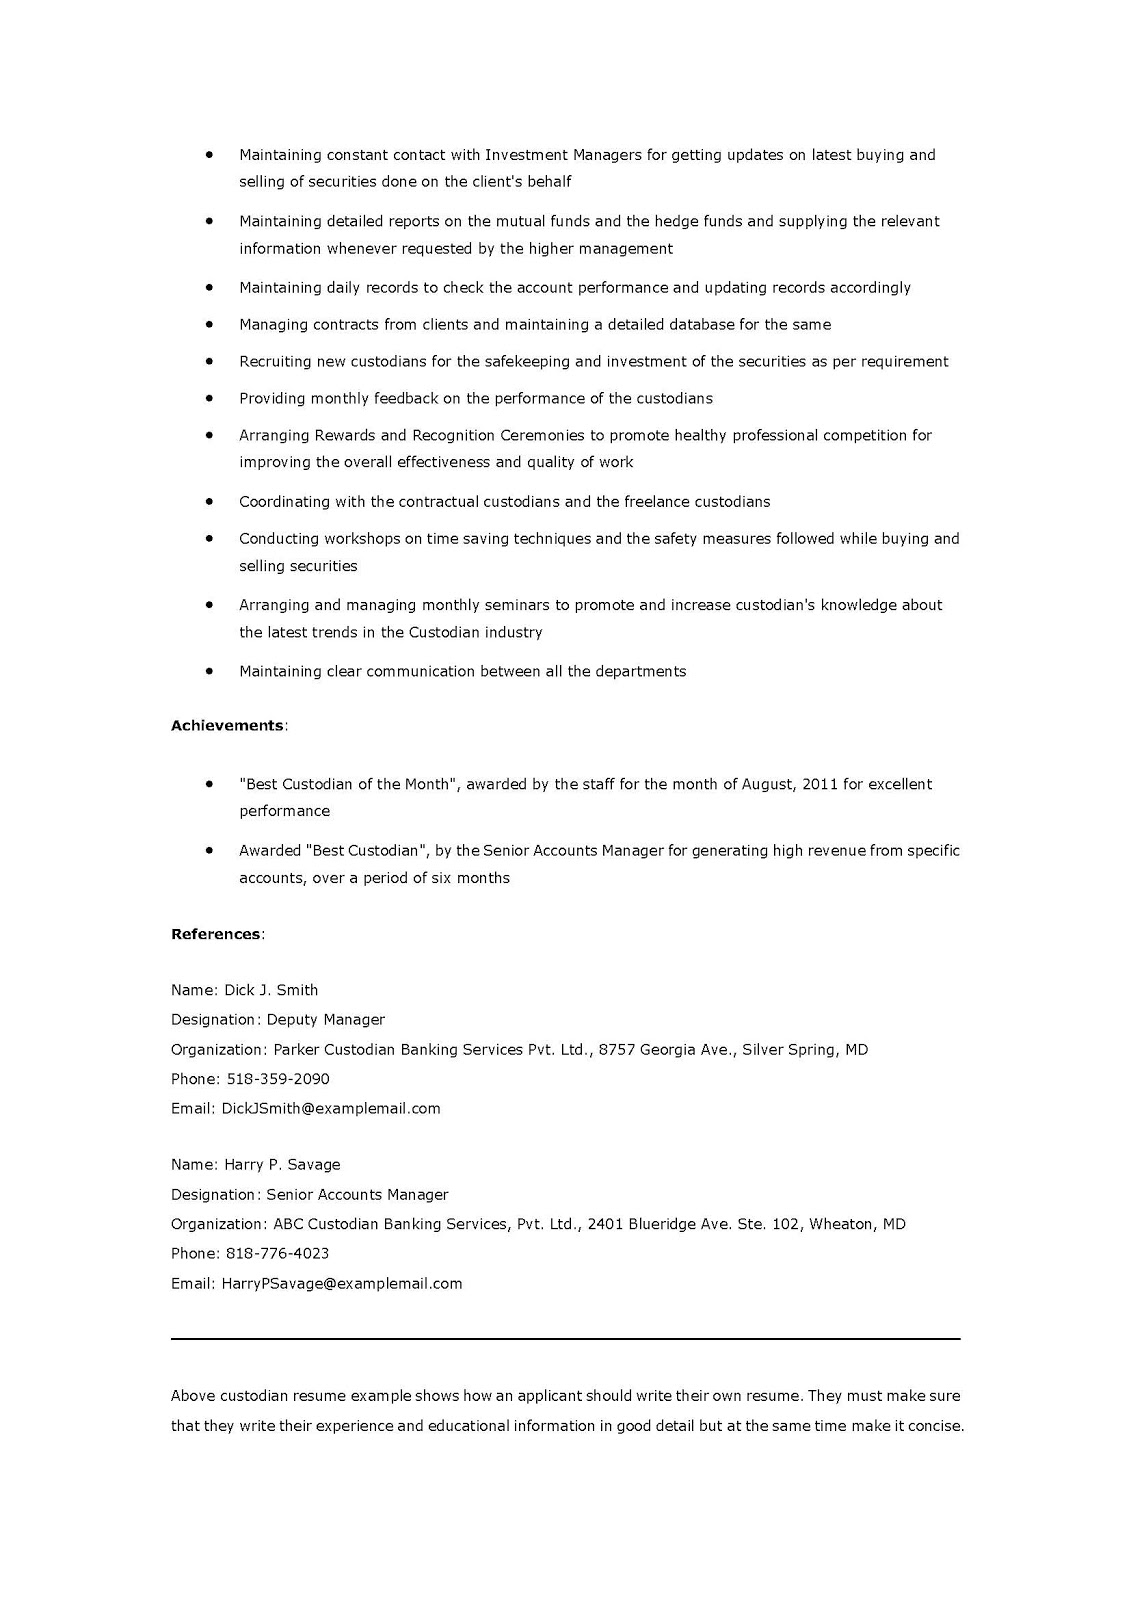 Resume Examples For Janitorial Position Resume Samples Custodian Resume